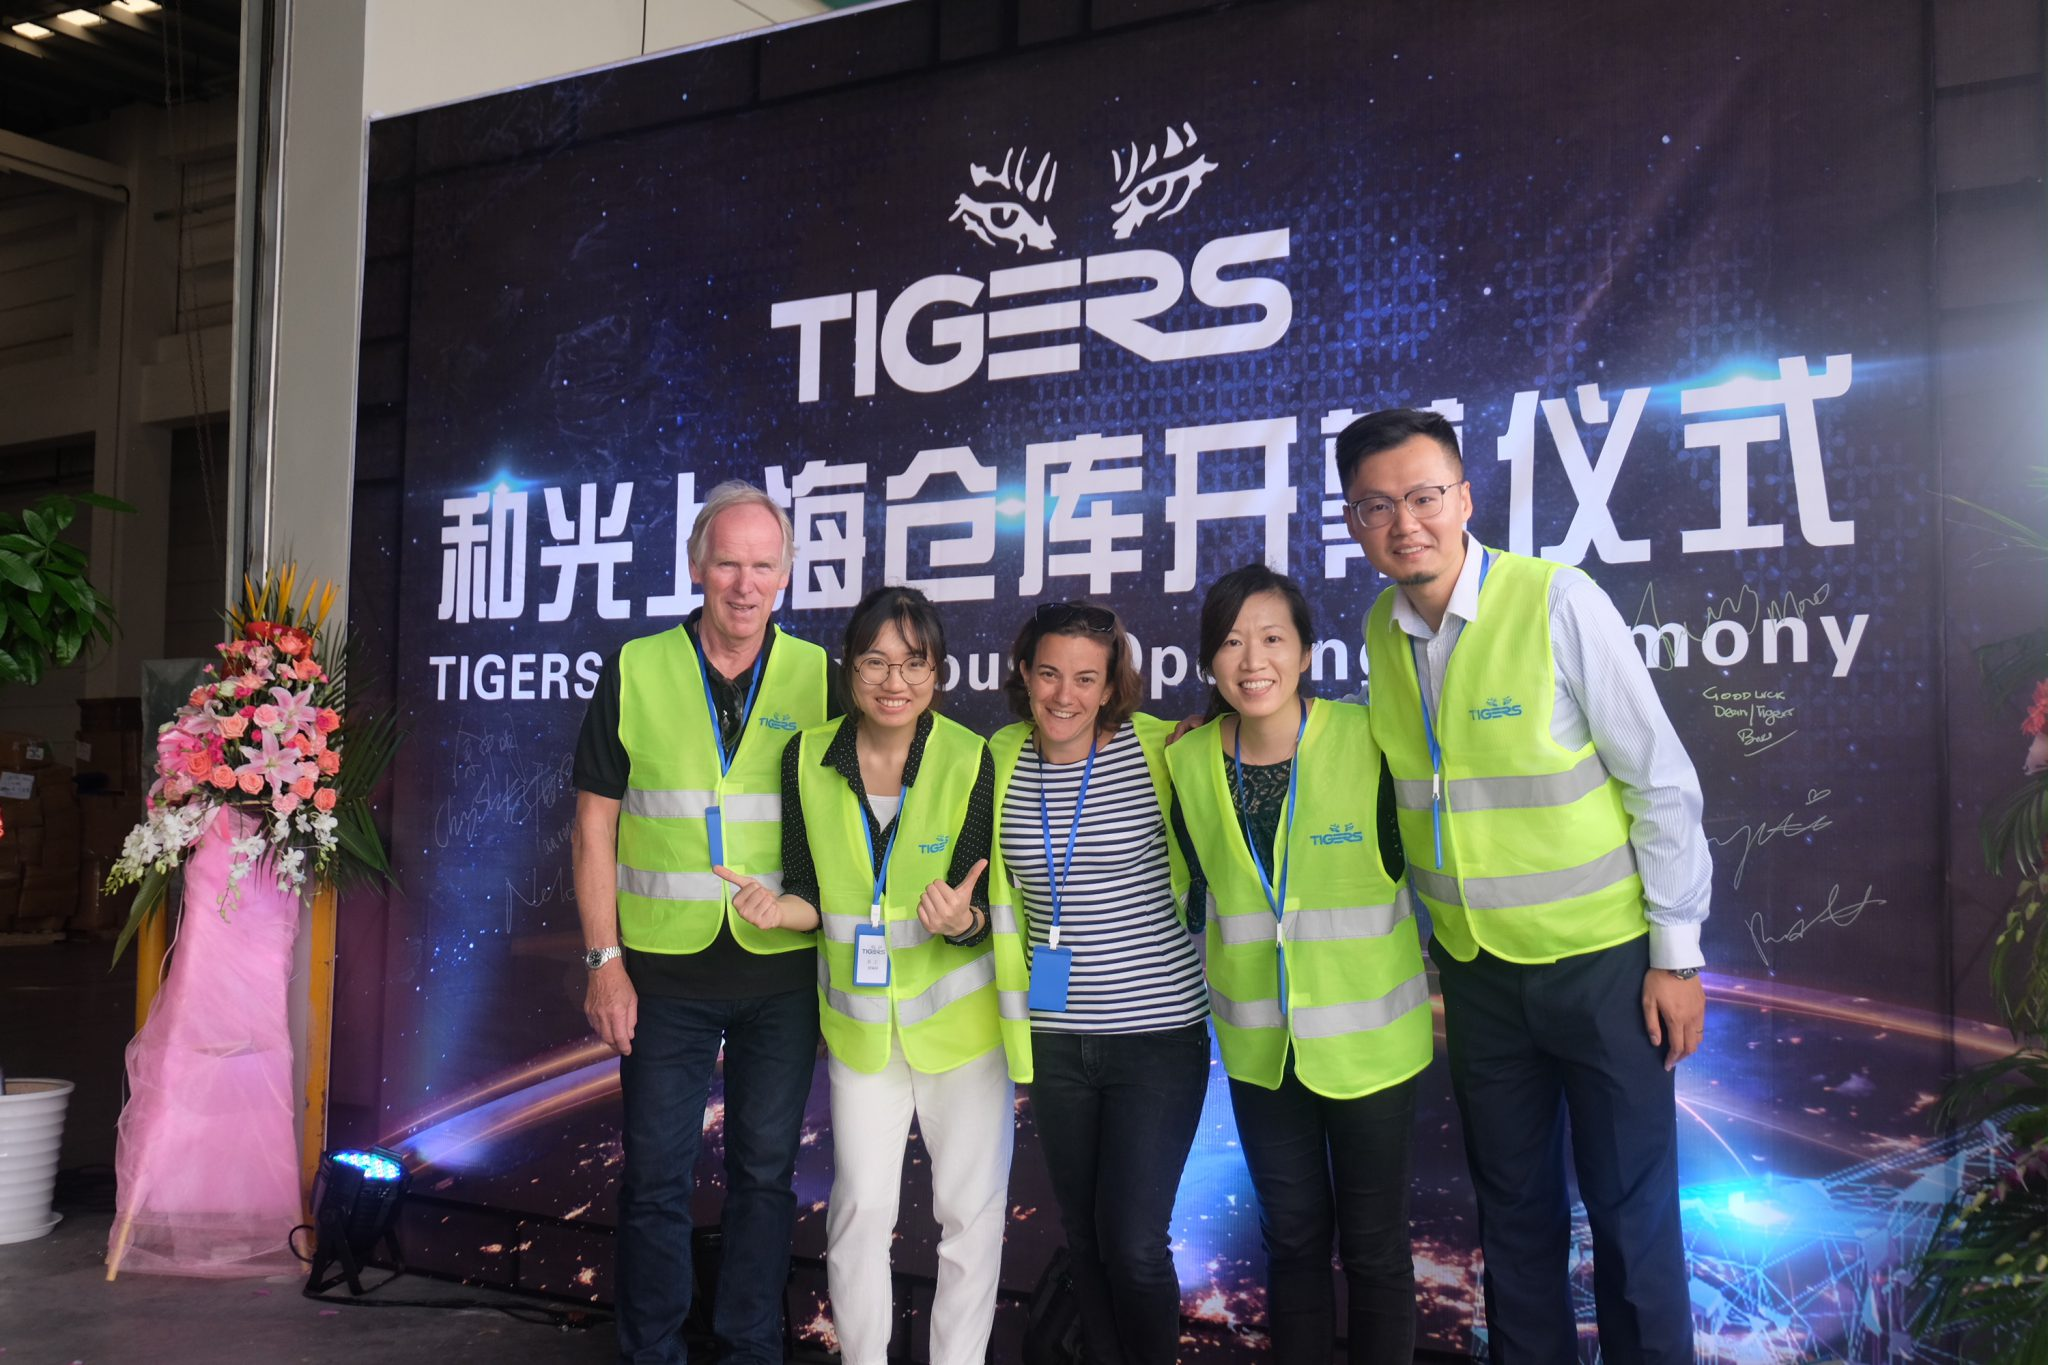 Tigers relocates to new Shanghai facility as part of ongoing global